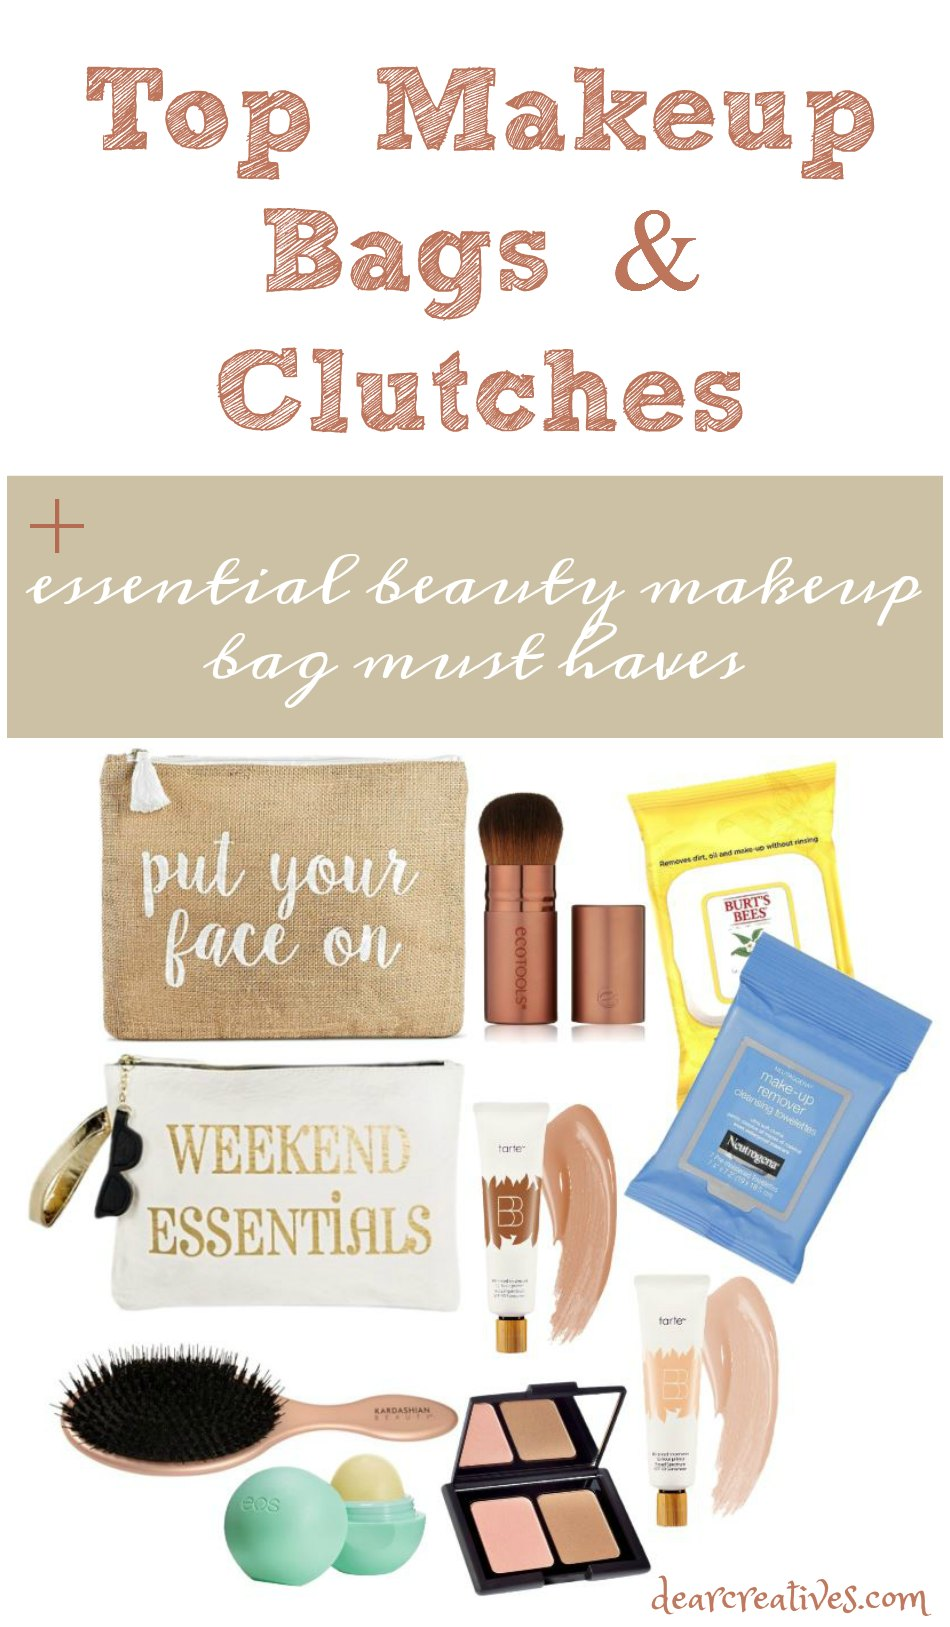 Trending Makeup Bags And Clutches + Essential Beauty Must Haves